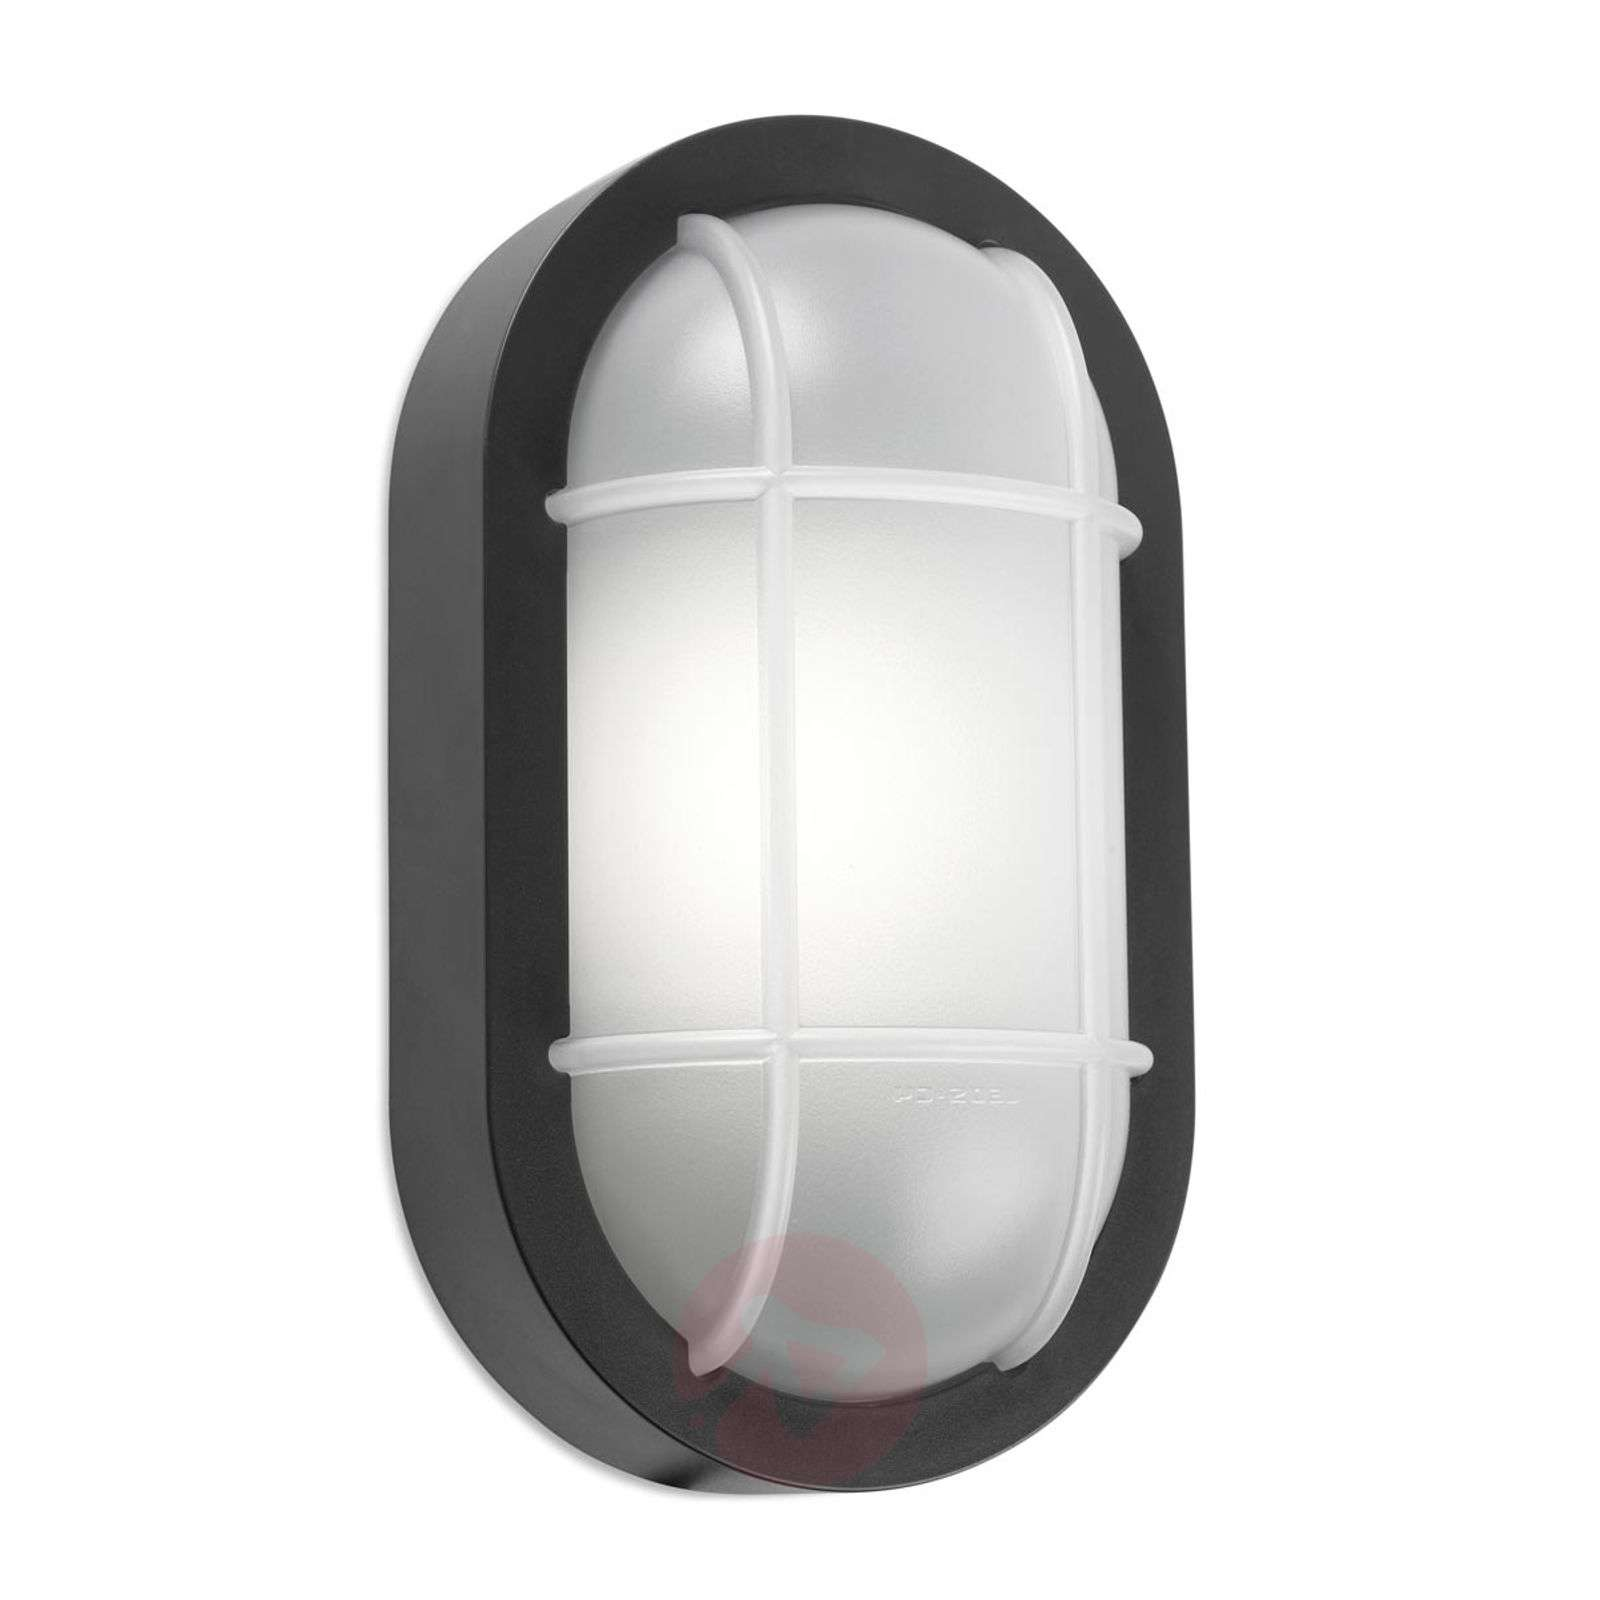 Plafoniere Garage Led : Acquista lampada led da cantina o garage turtled lampade.it